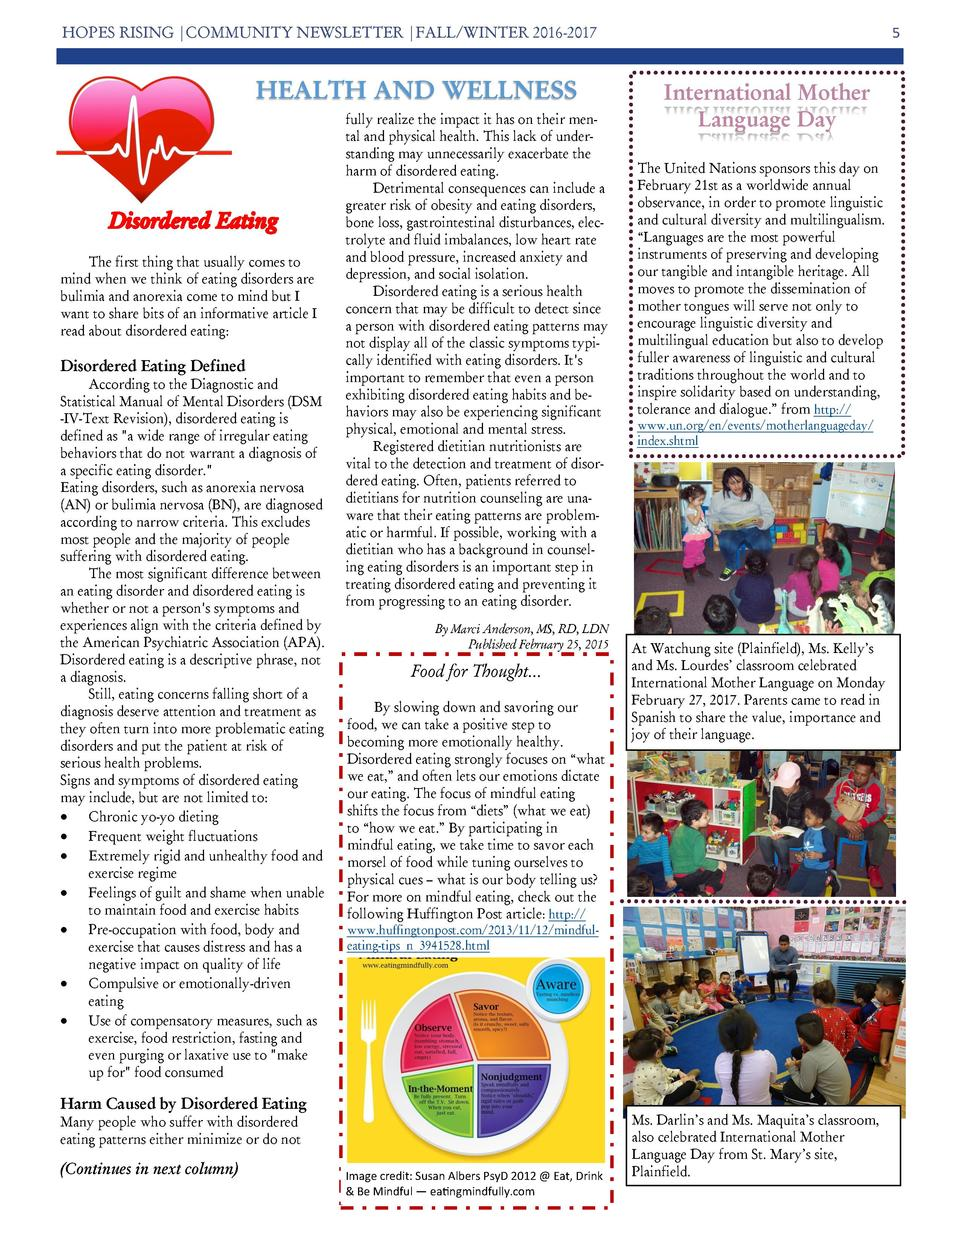 HOPES RISING  COMMUNITY NEWSLETTER  FALL WINTER 2016-2017  HEALTH AND WELLNESS  The first thing that usually comes to mind...